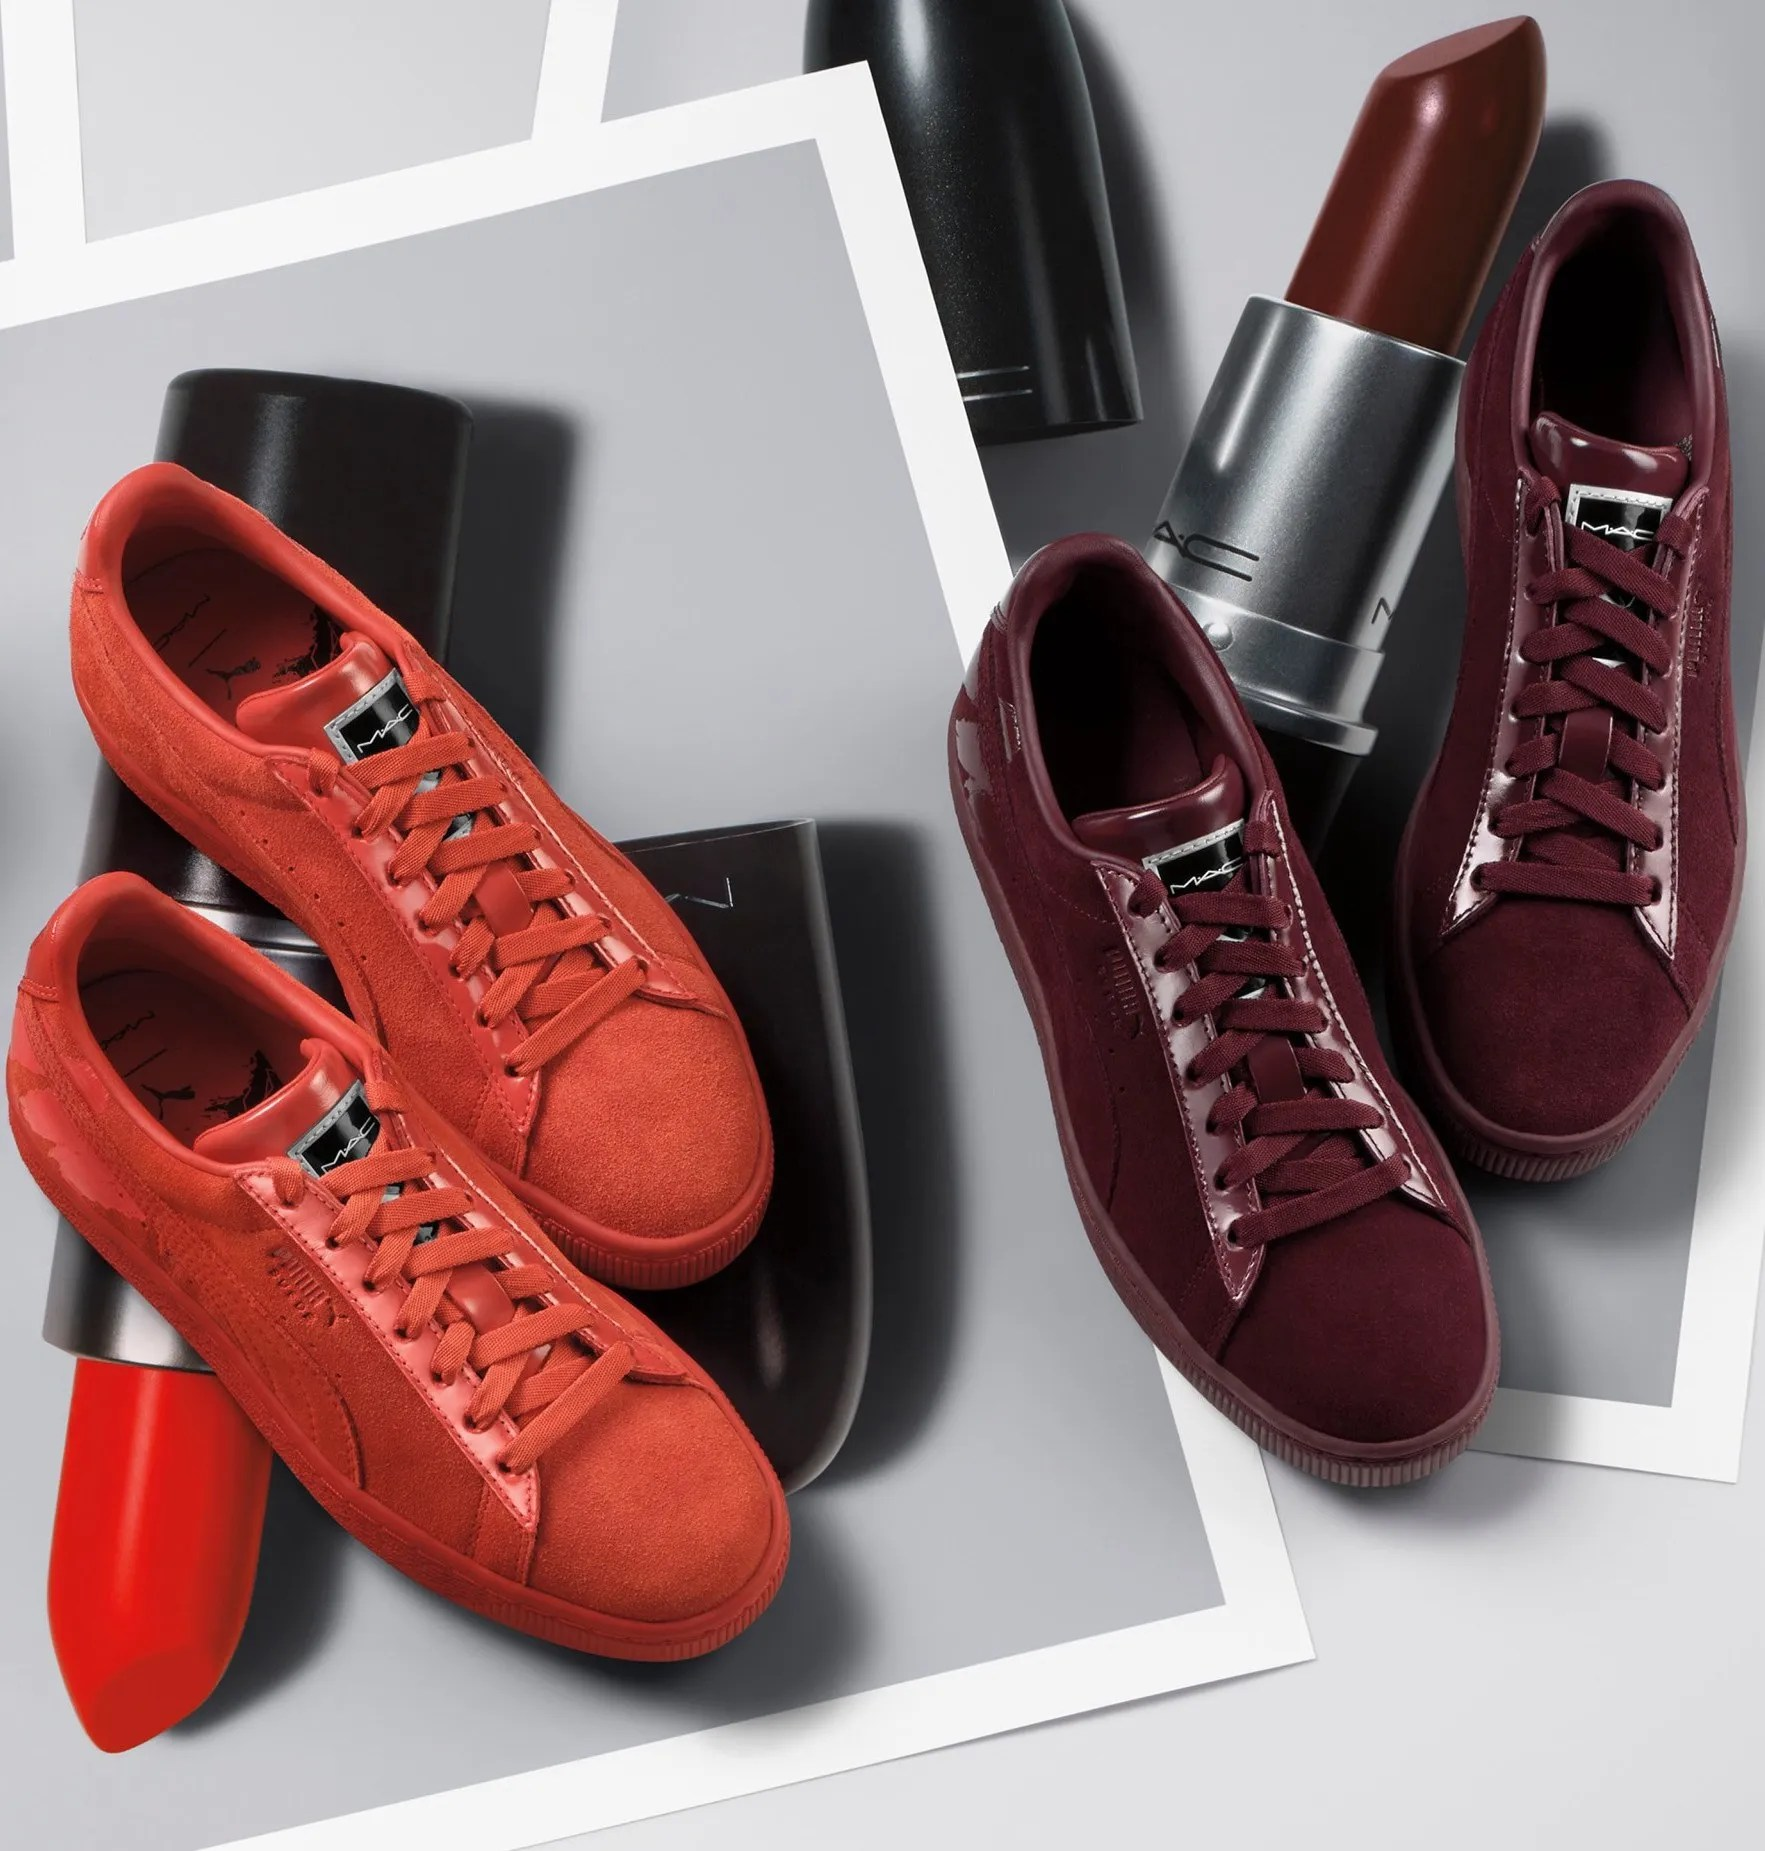 a274bc7f087 For Puma's newest line of sneakers, the brand found inspiration not among  your favorite singers, Kardashian-Jenners, or cartoon characters, ...